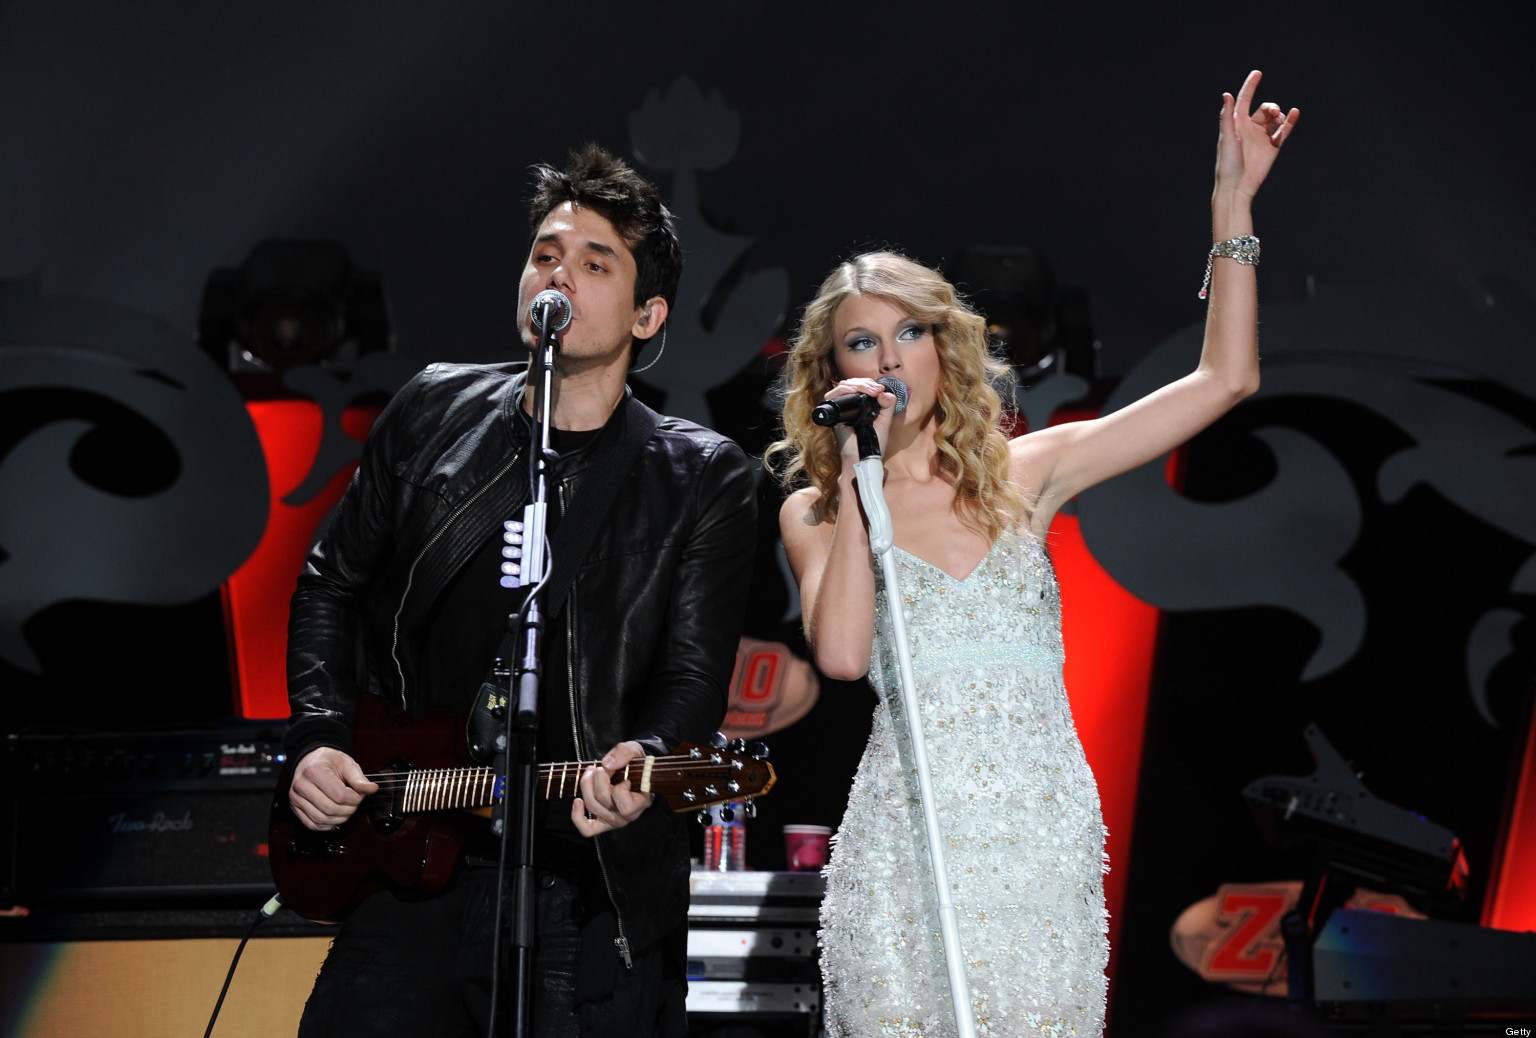 john mayer paper doll taylor swift It seems too good to be true, but it appears that john mayer not only debuted his new paper doll single aimed at ex taylor swift, but simultaneously released the music video online featuring prancercise queen johanna rohrback.